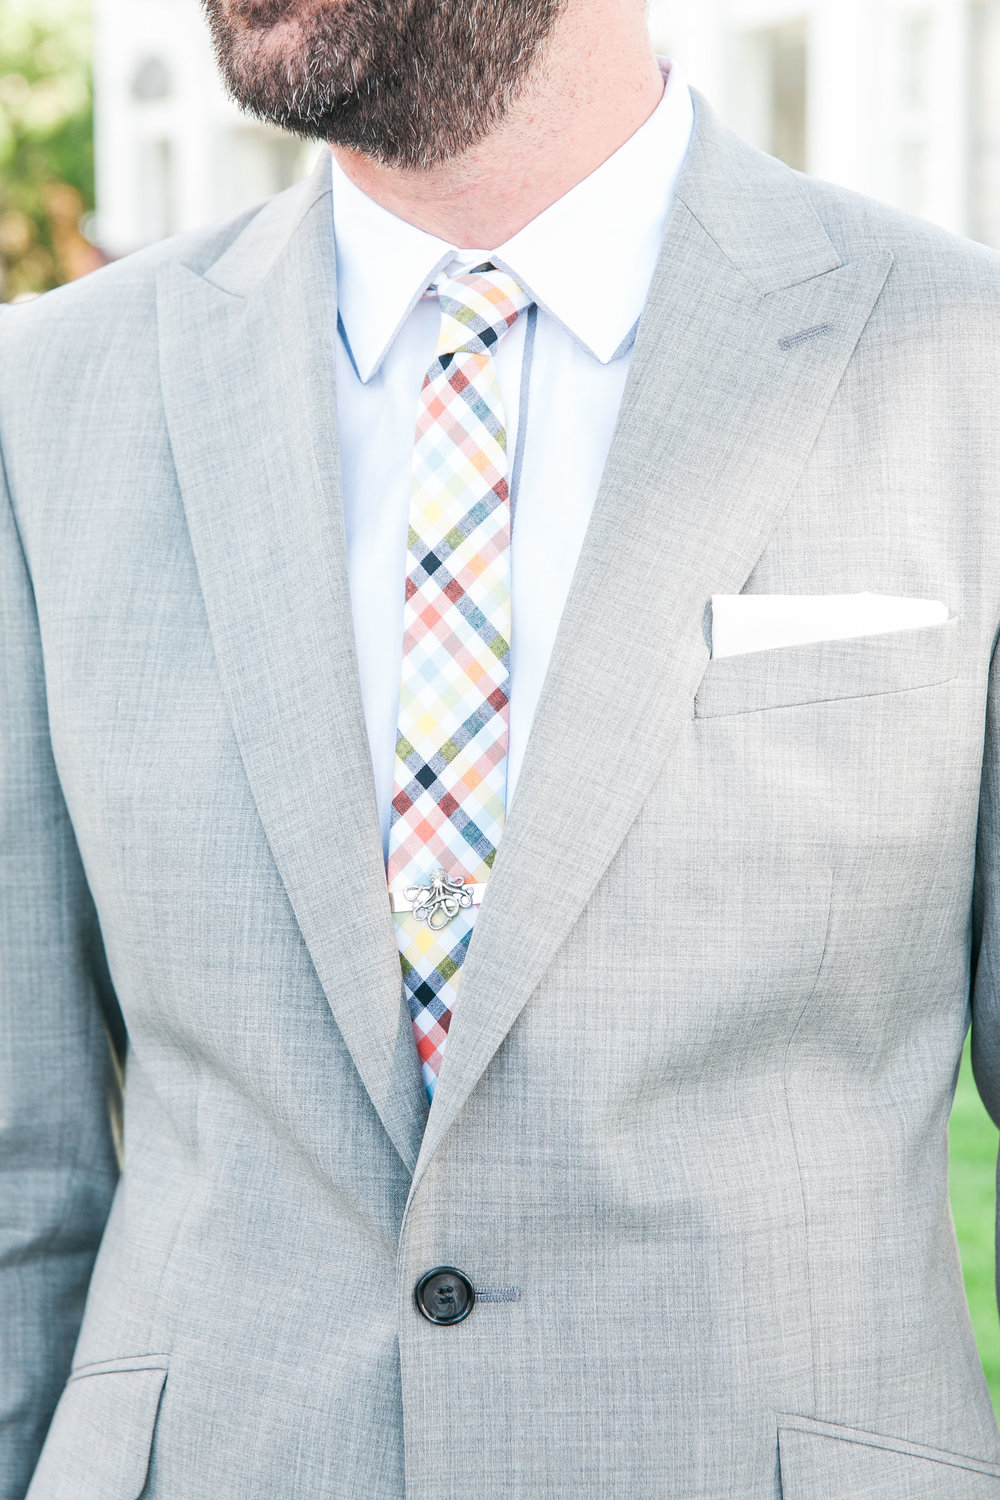 Detail photo of guests outfit at summer wedding